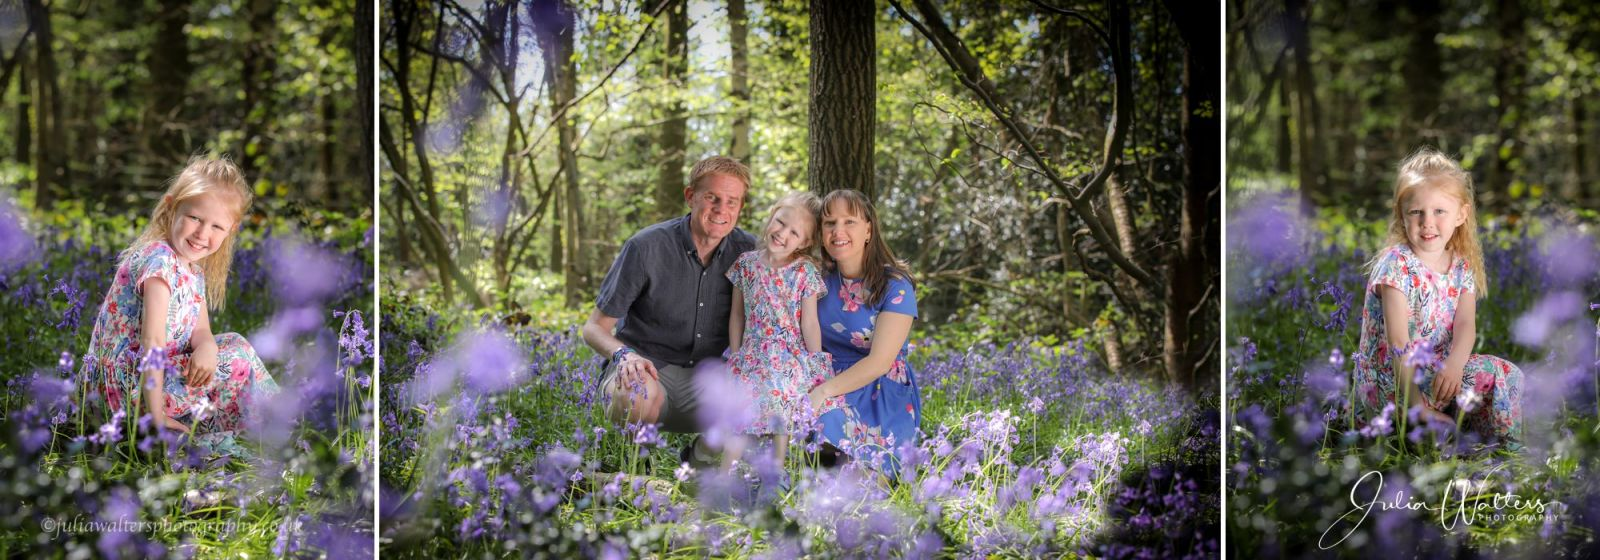 family bluebell portrait photography